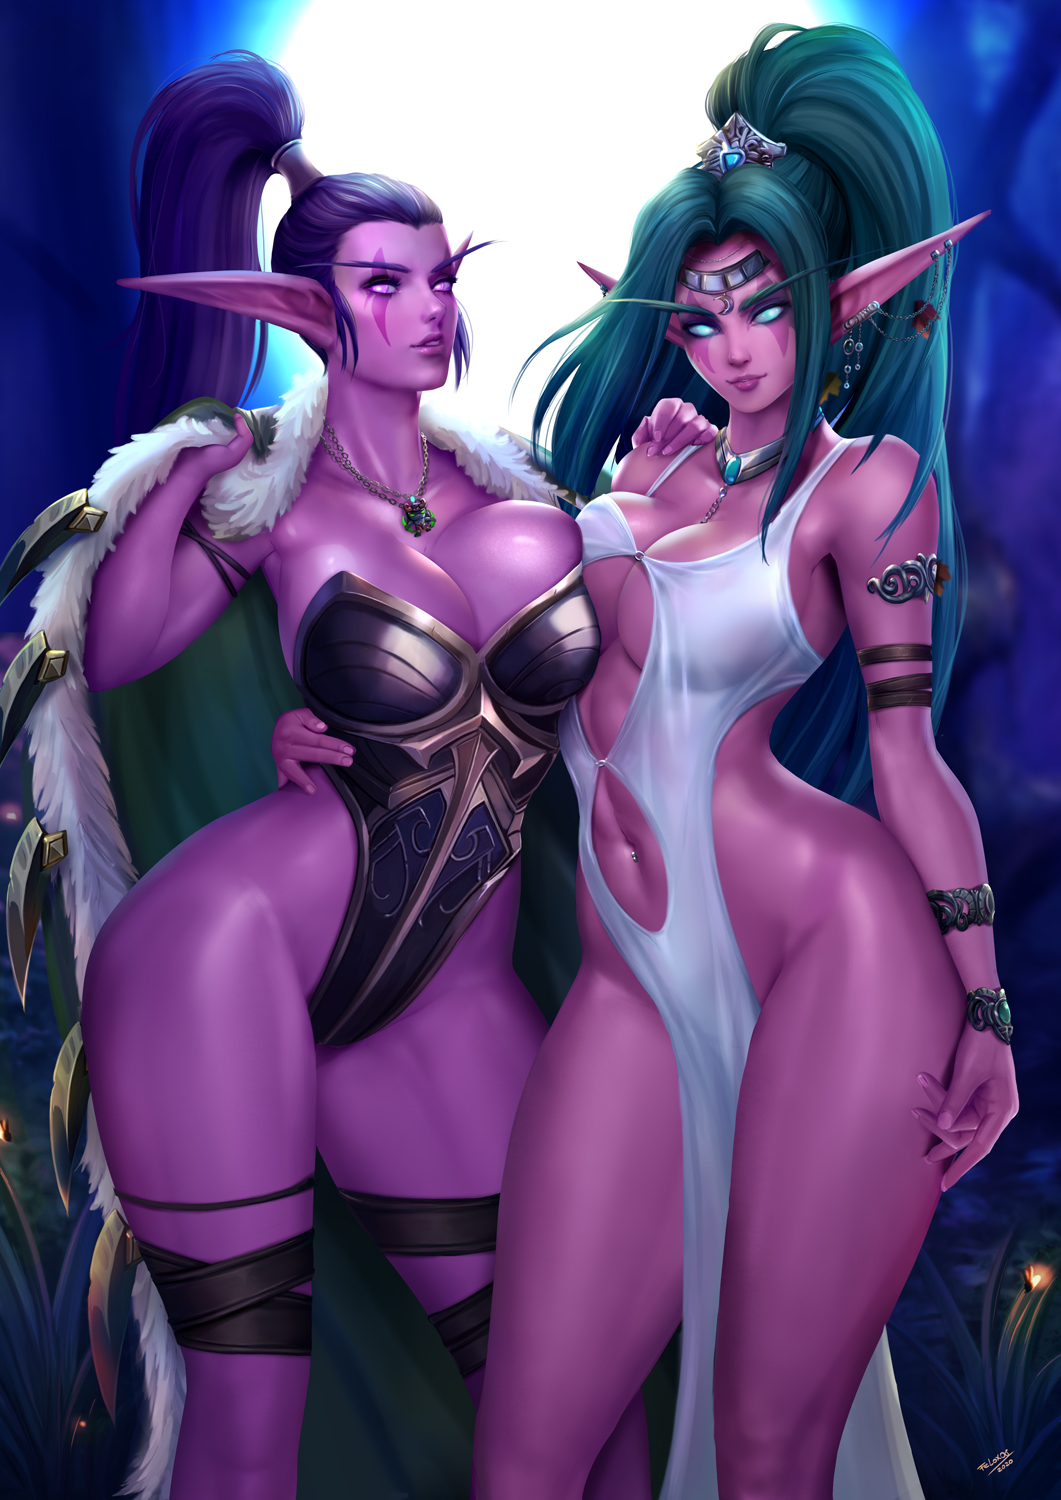 warcraft world nude of night elf Joise and the pussy cats